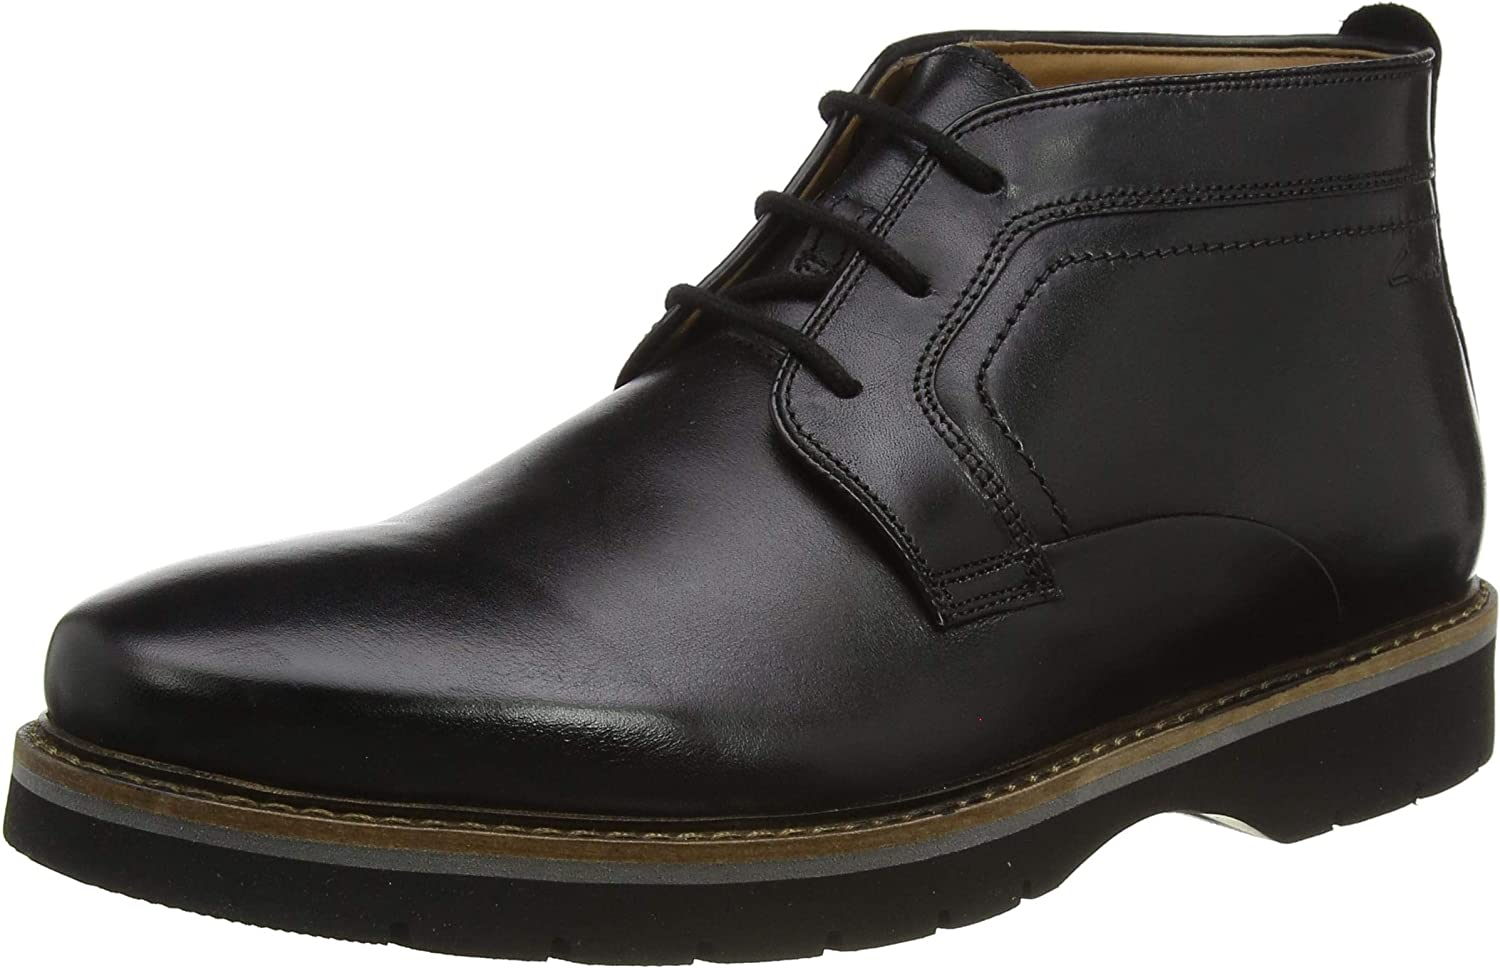 Clarks Bayhill New product Mid Fresno Mall Ankle Black Men Boots